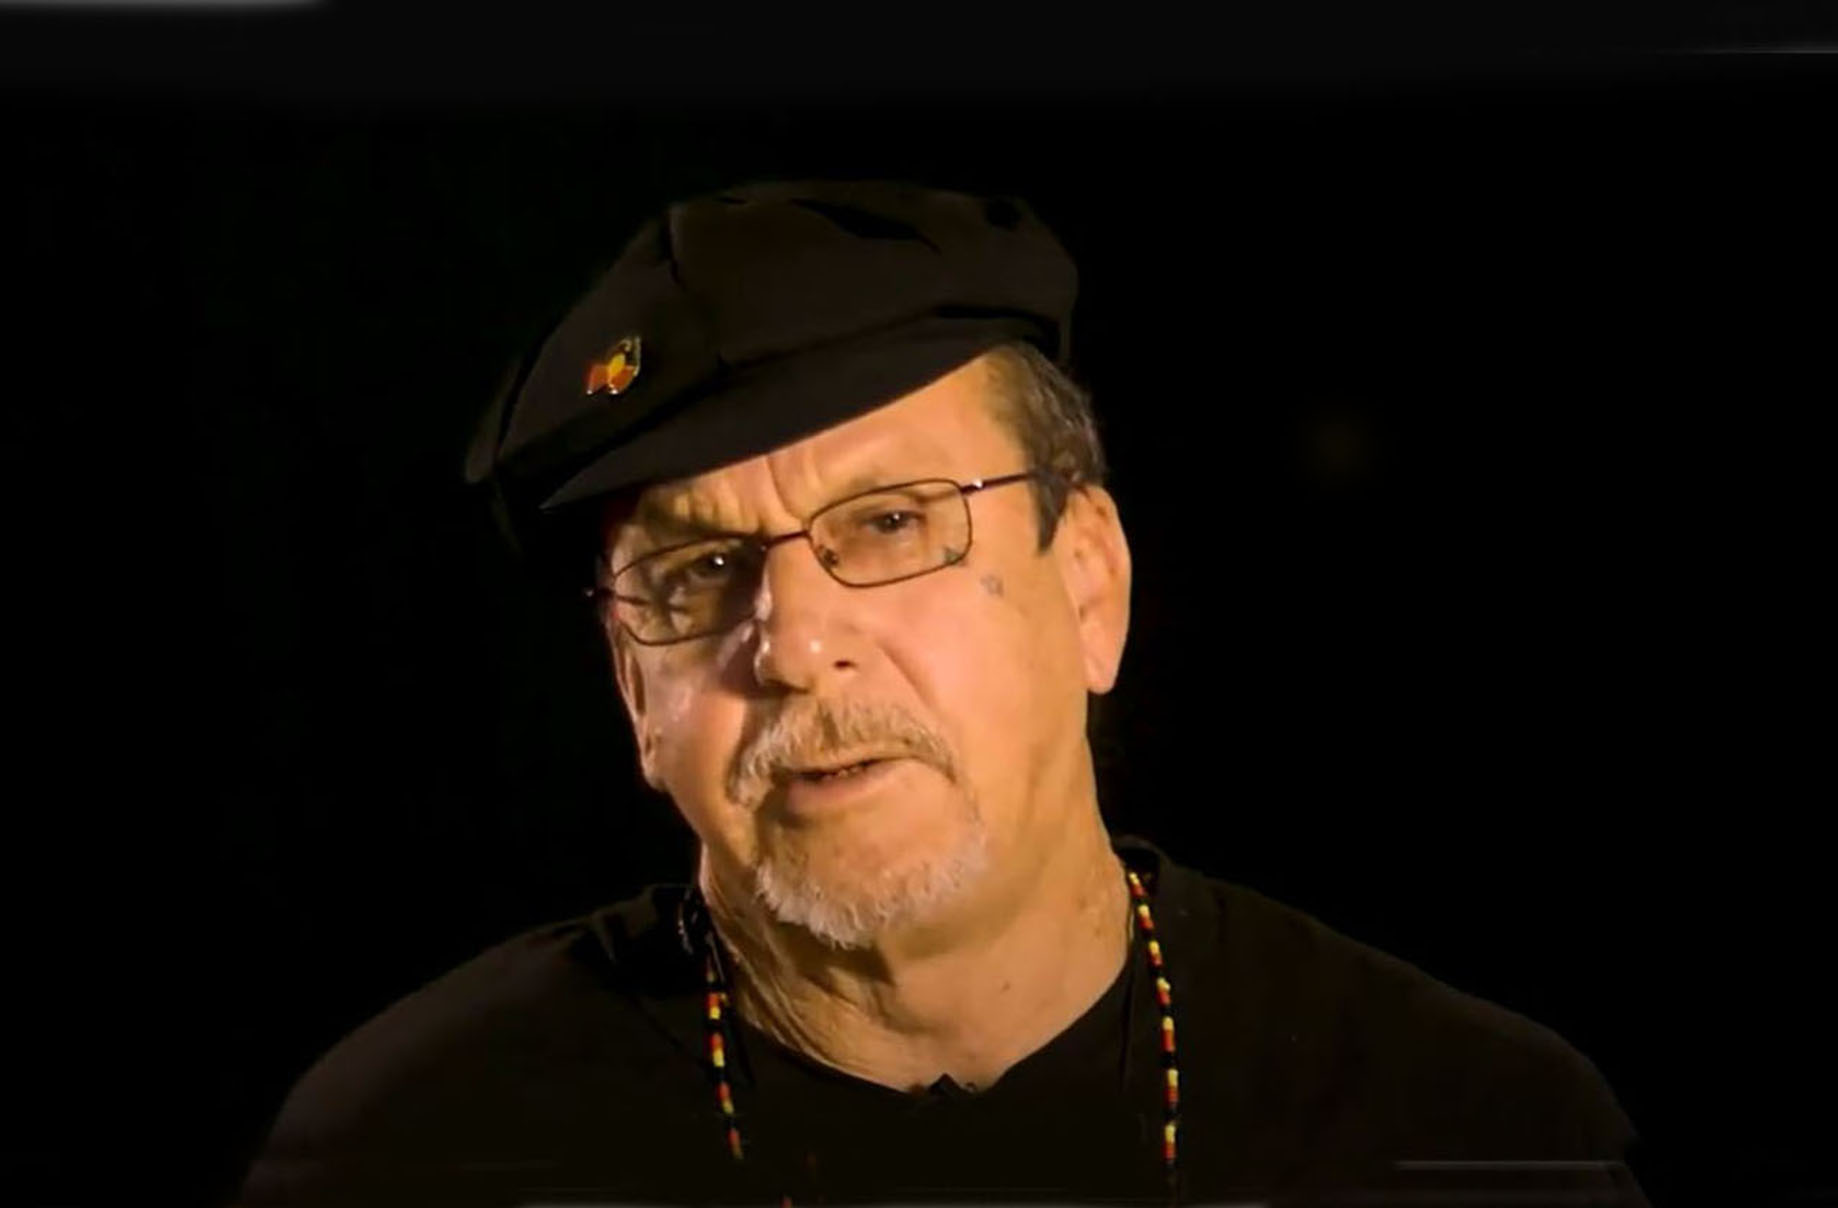 Ken Canning wearing a black cap, black t-shirt, necklace and badge in Aboriginal colours